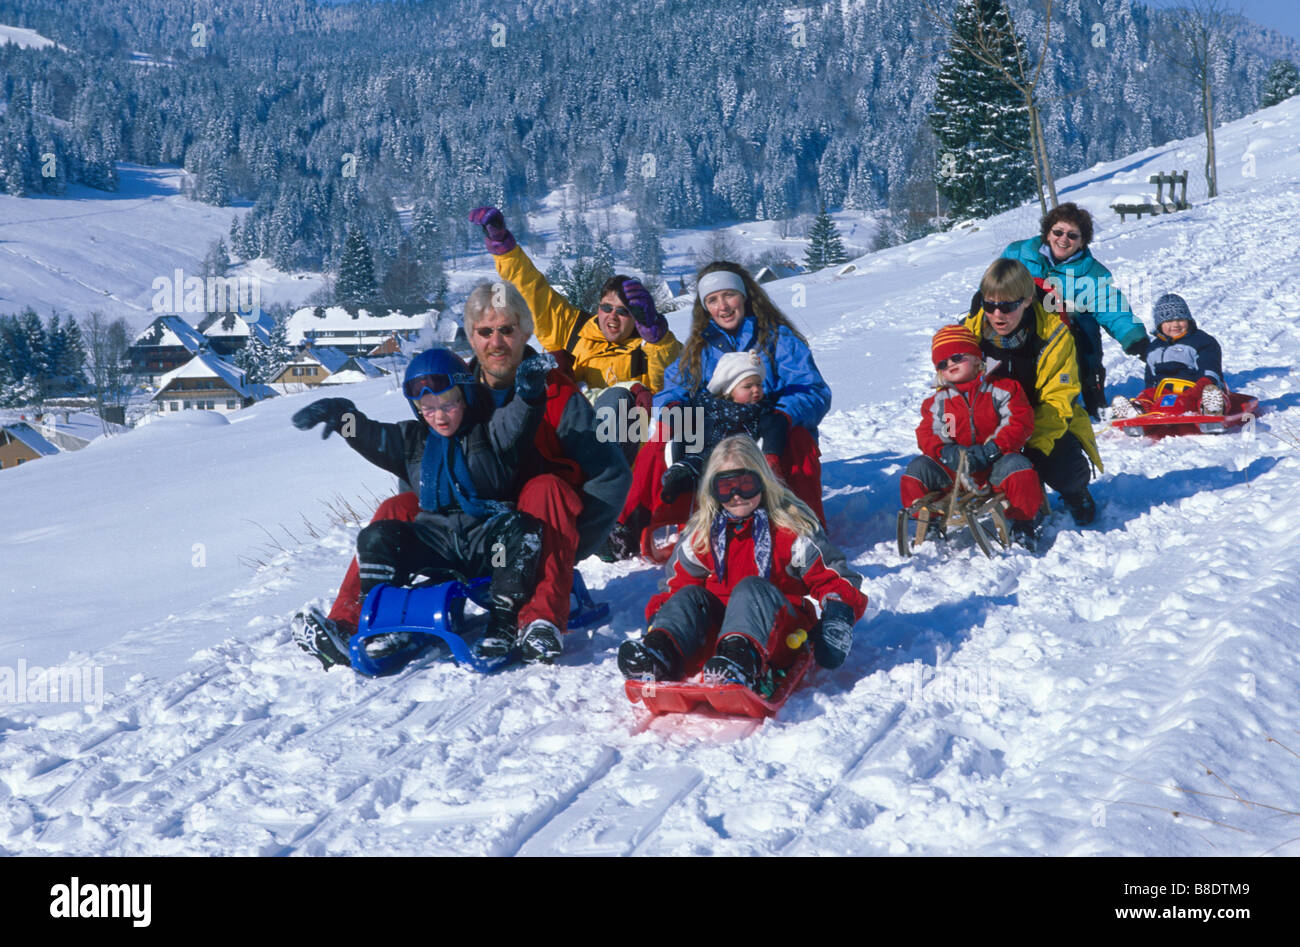 sledge ride stockfotos sledge ride bilder alamy. Black Bedroom Furniture Sets. Home Design Ideas